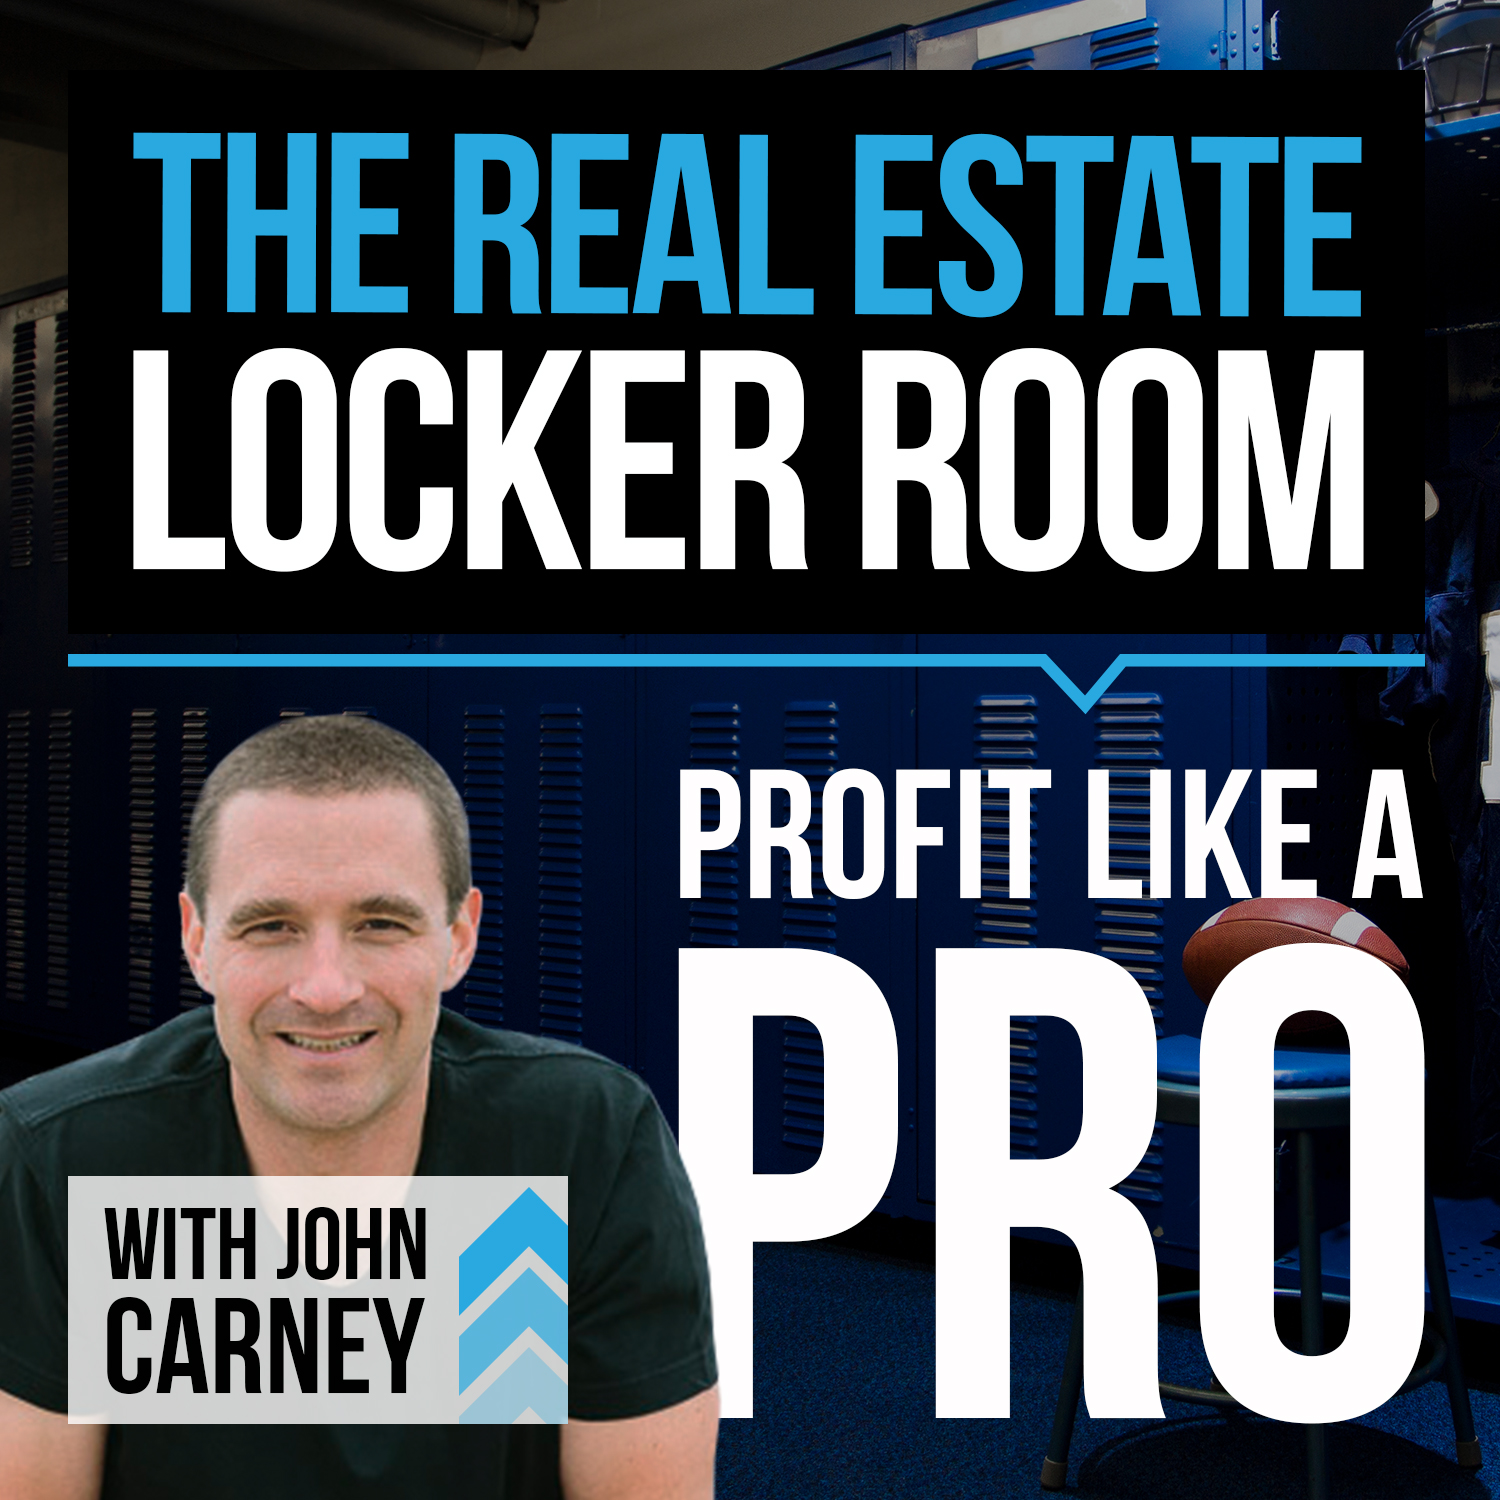 The Real Estate Locker Room Show with John Carney show art